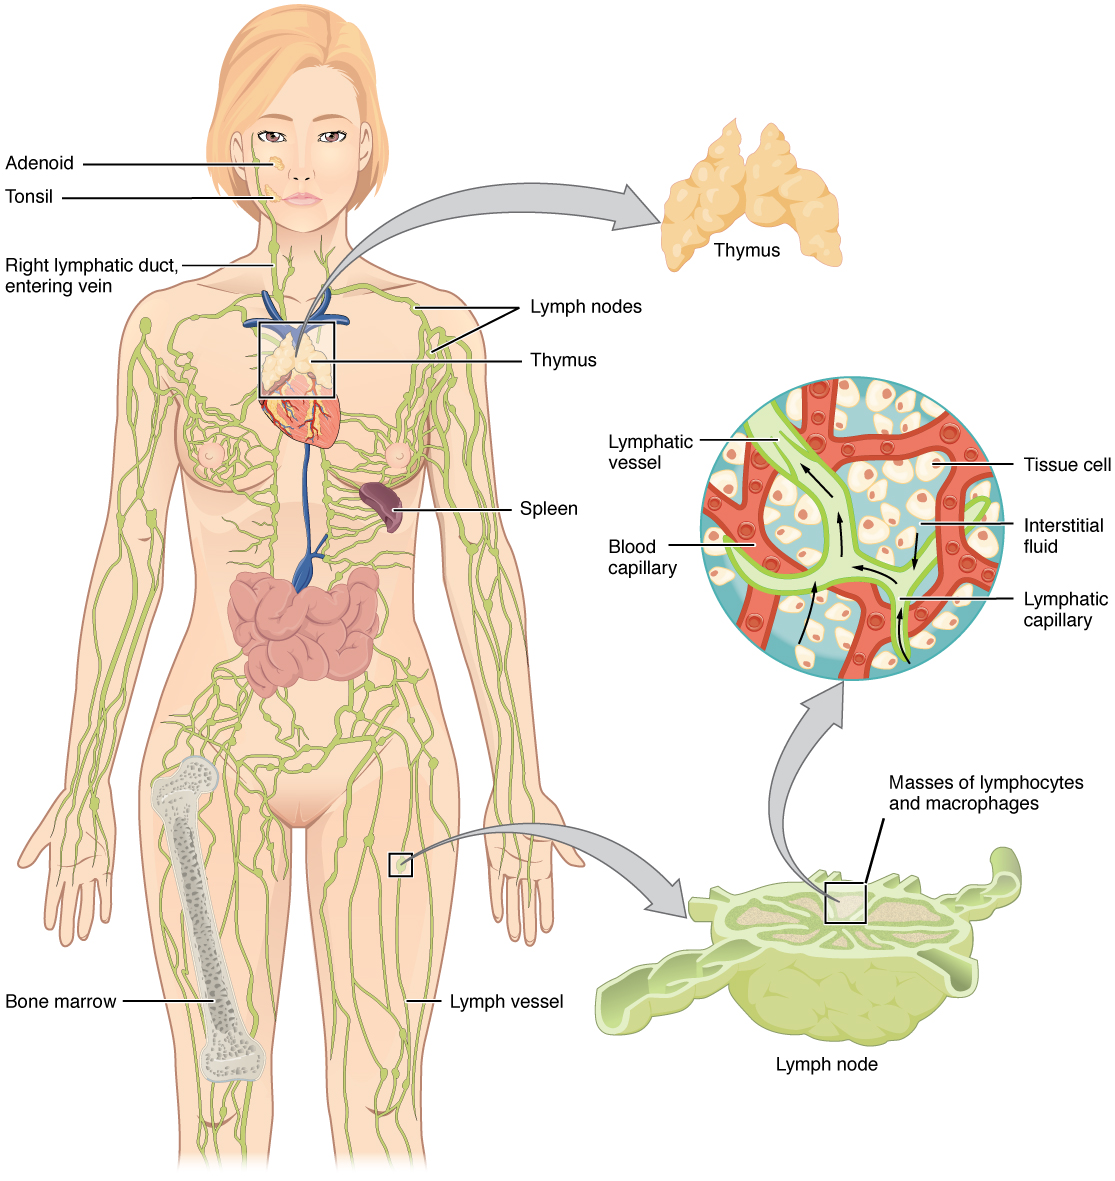 Lymphatic system in the human body. Image description available.